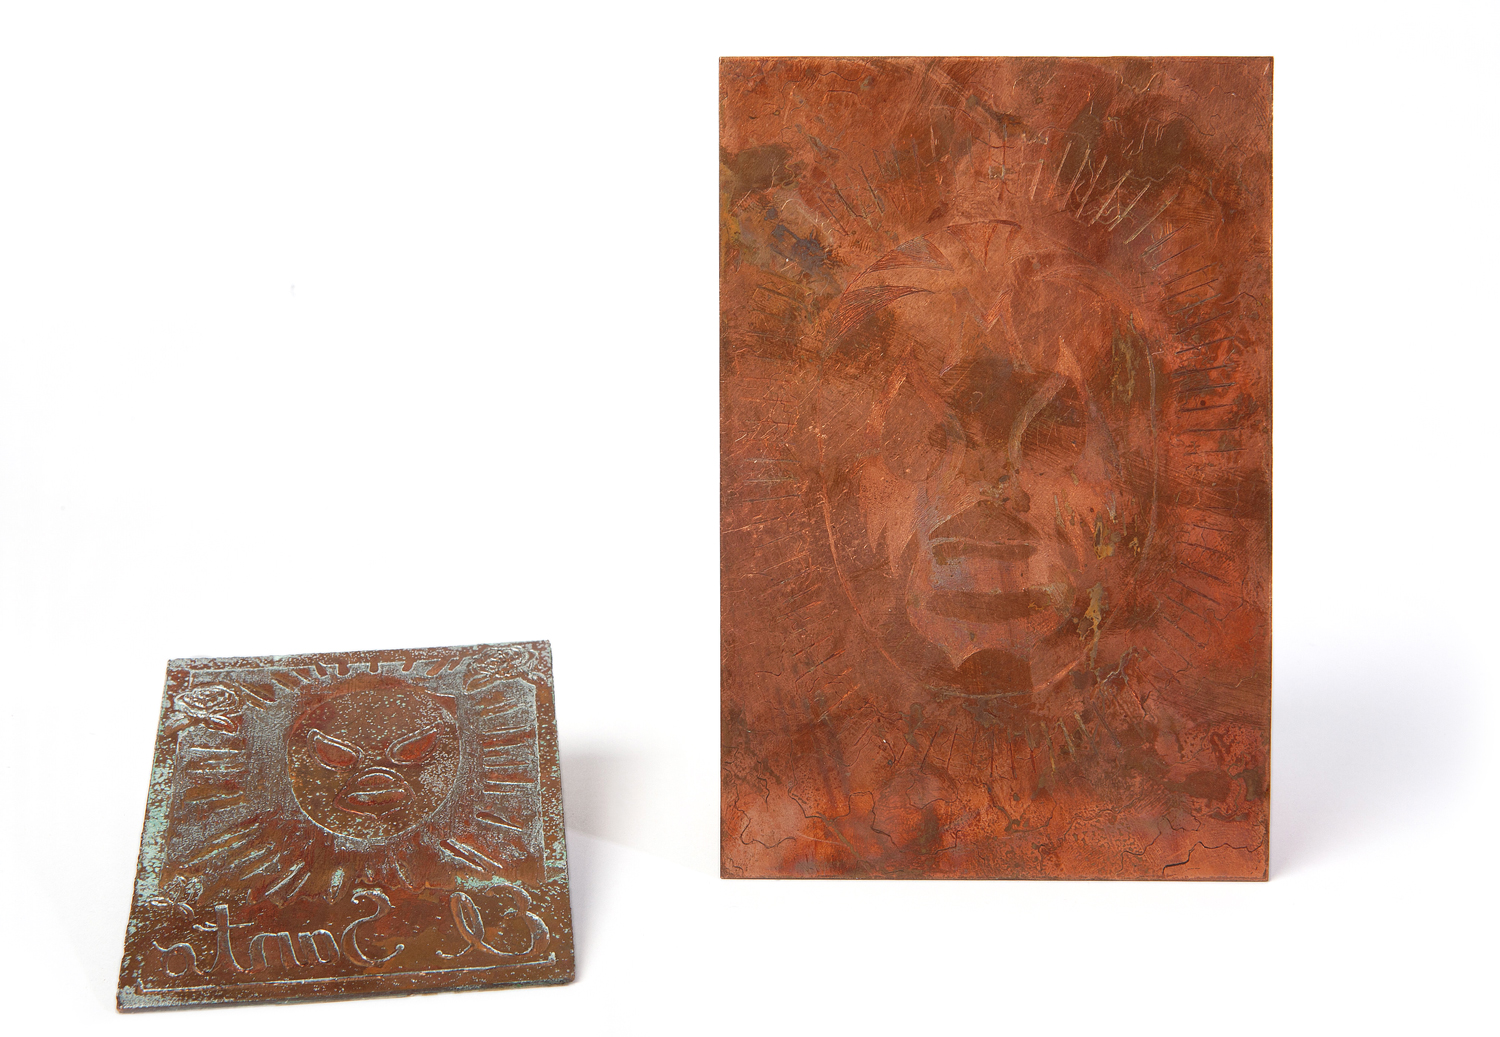 "2011 Etched relief plate (left) 4"" x 3""  2011 Etched intaglio plate (right) 6"" x 4"""